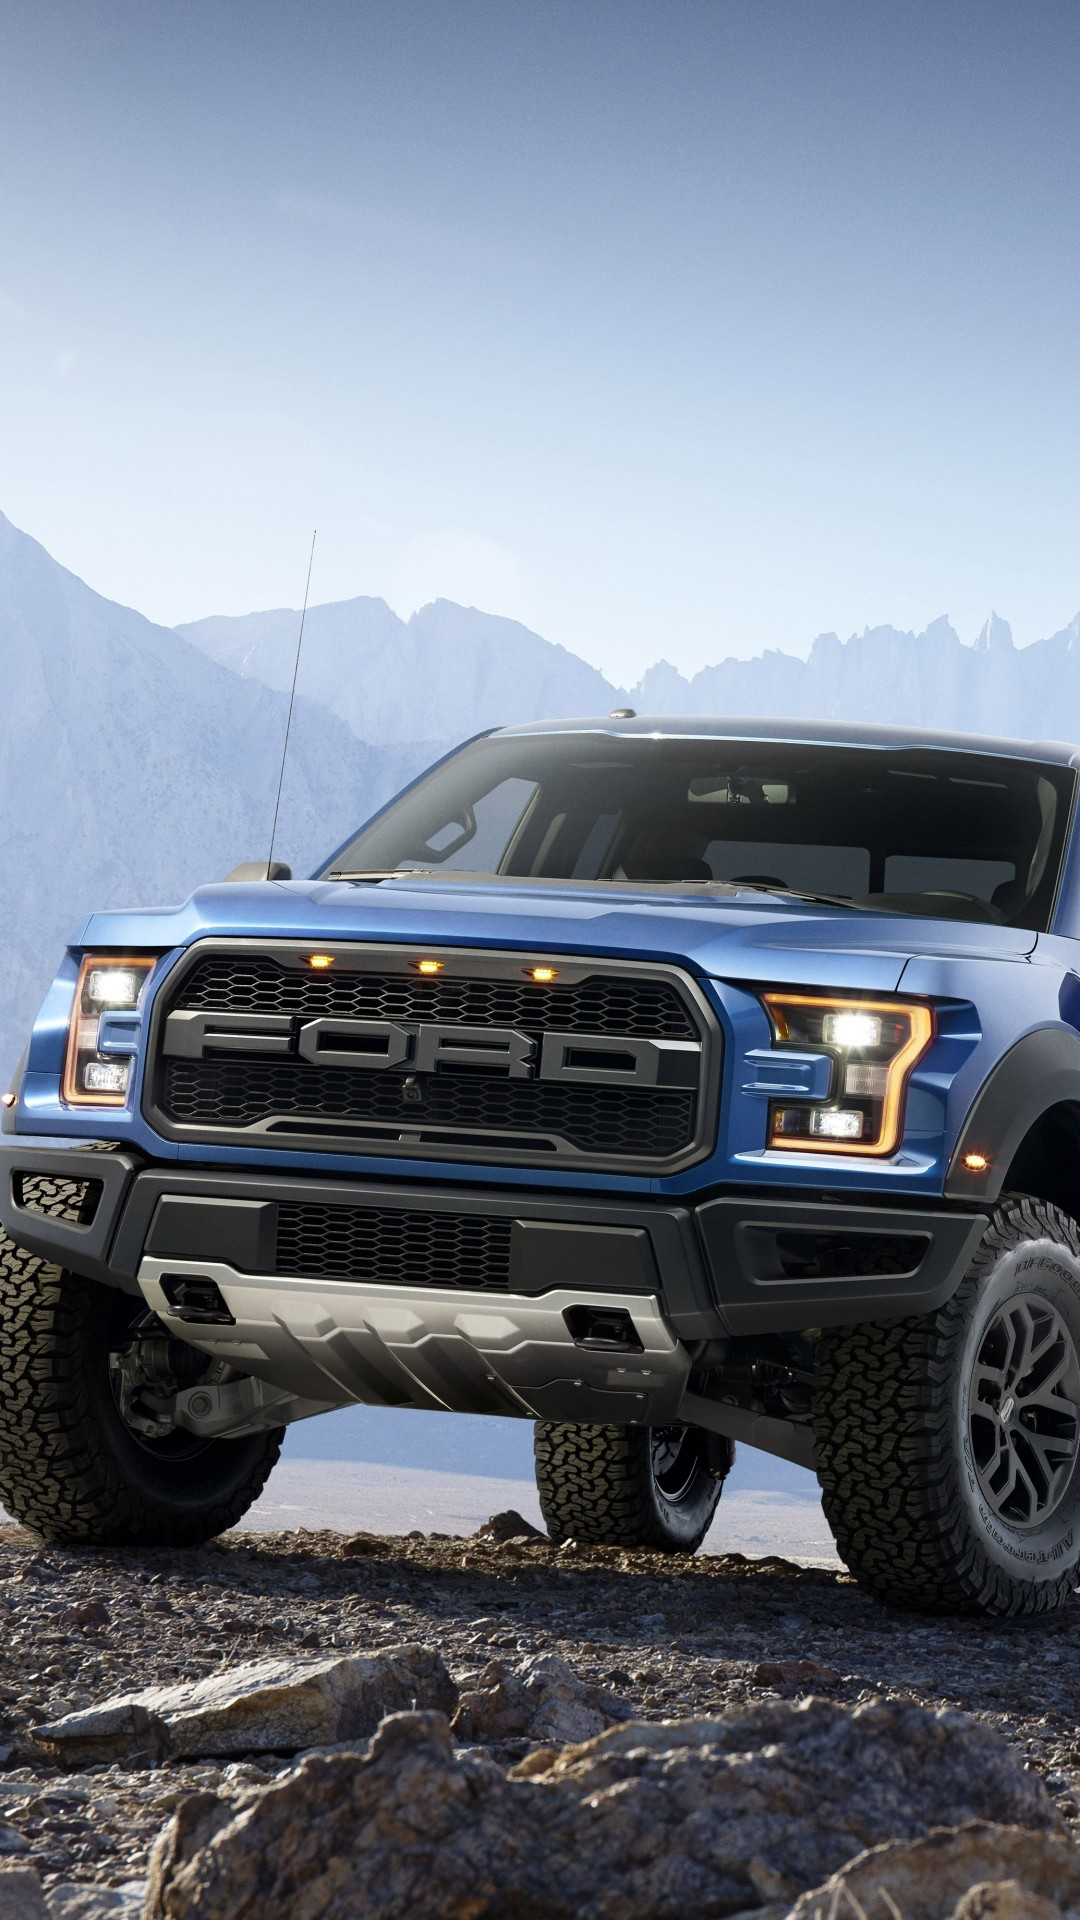 raptor ford iphone wallpapers hd mobile pickup background pc lifted check trucks abyss vehicles raptors getwallpapers stones pixelstalk wallpapercave